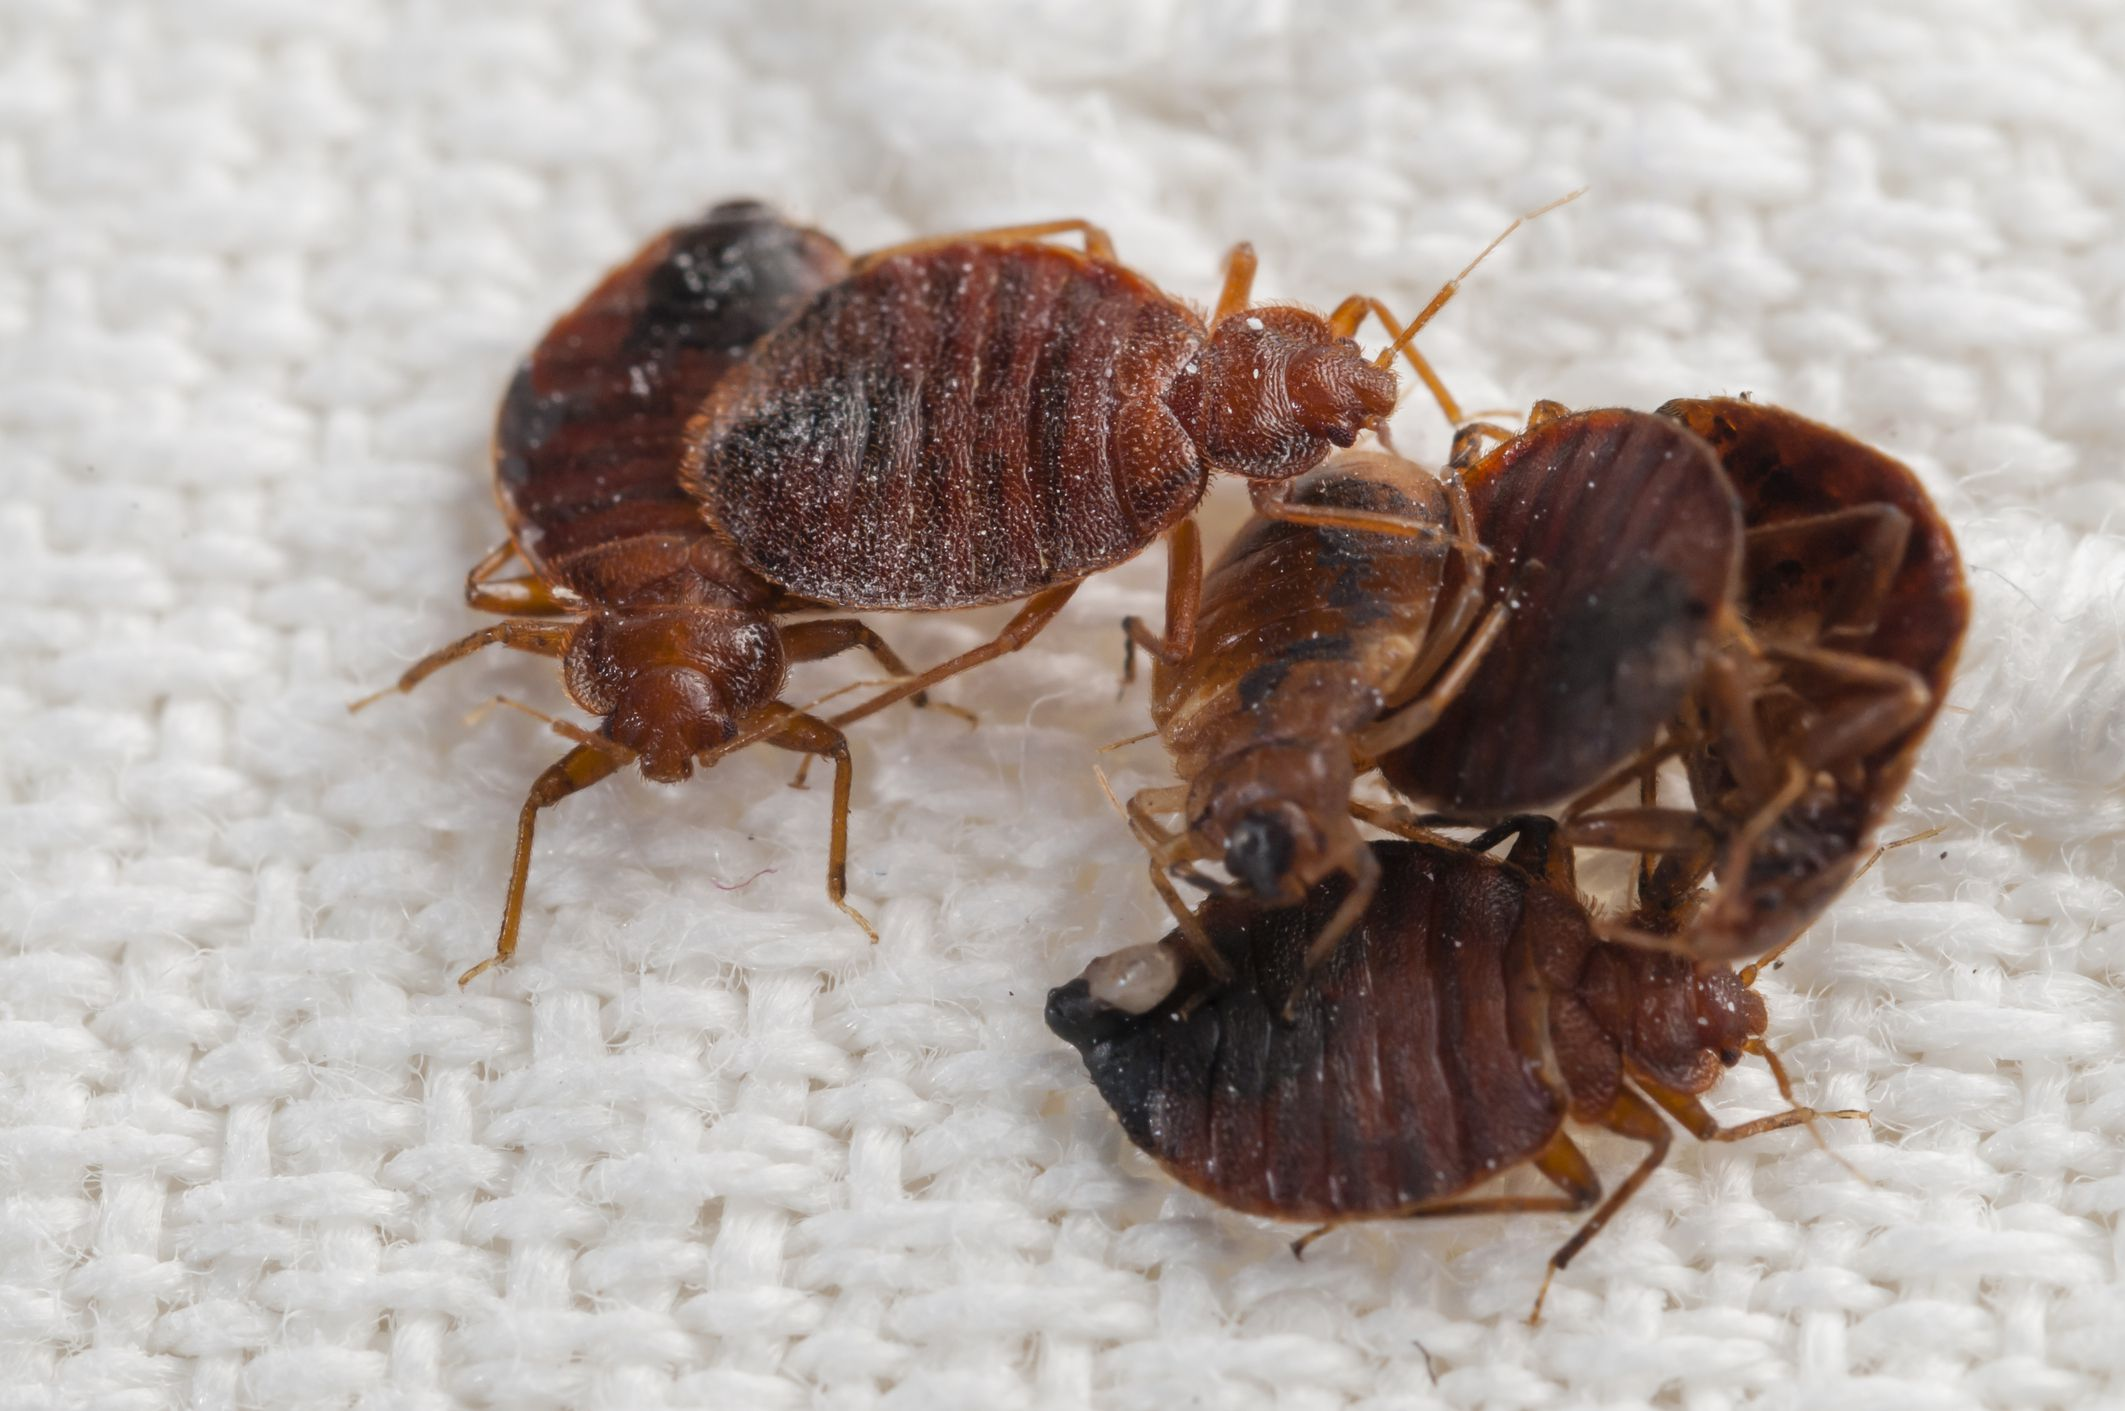 What Do Bed Bugs Look Like and Where Do They Live